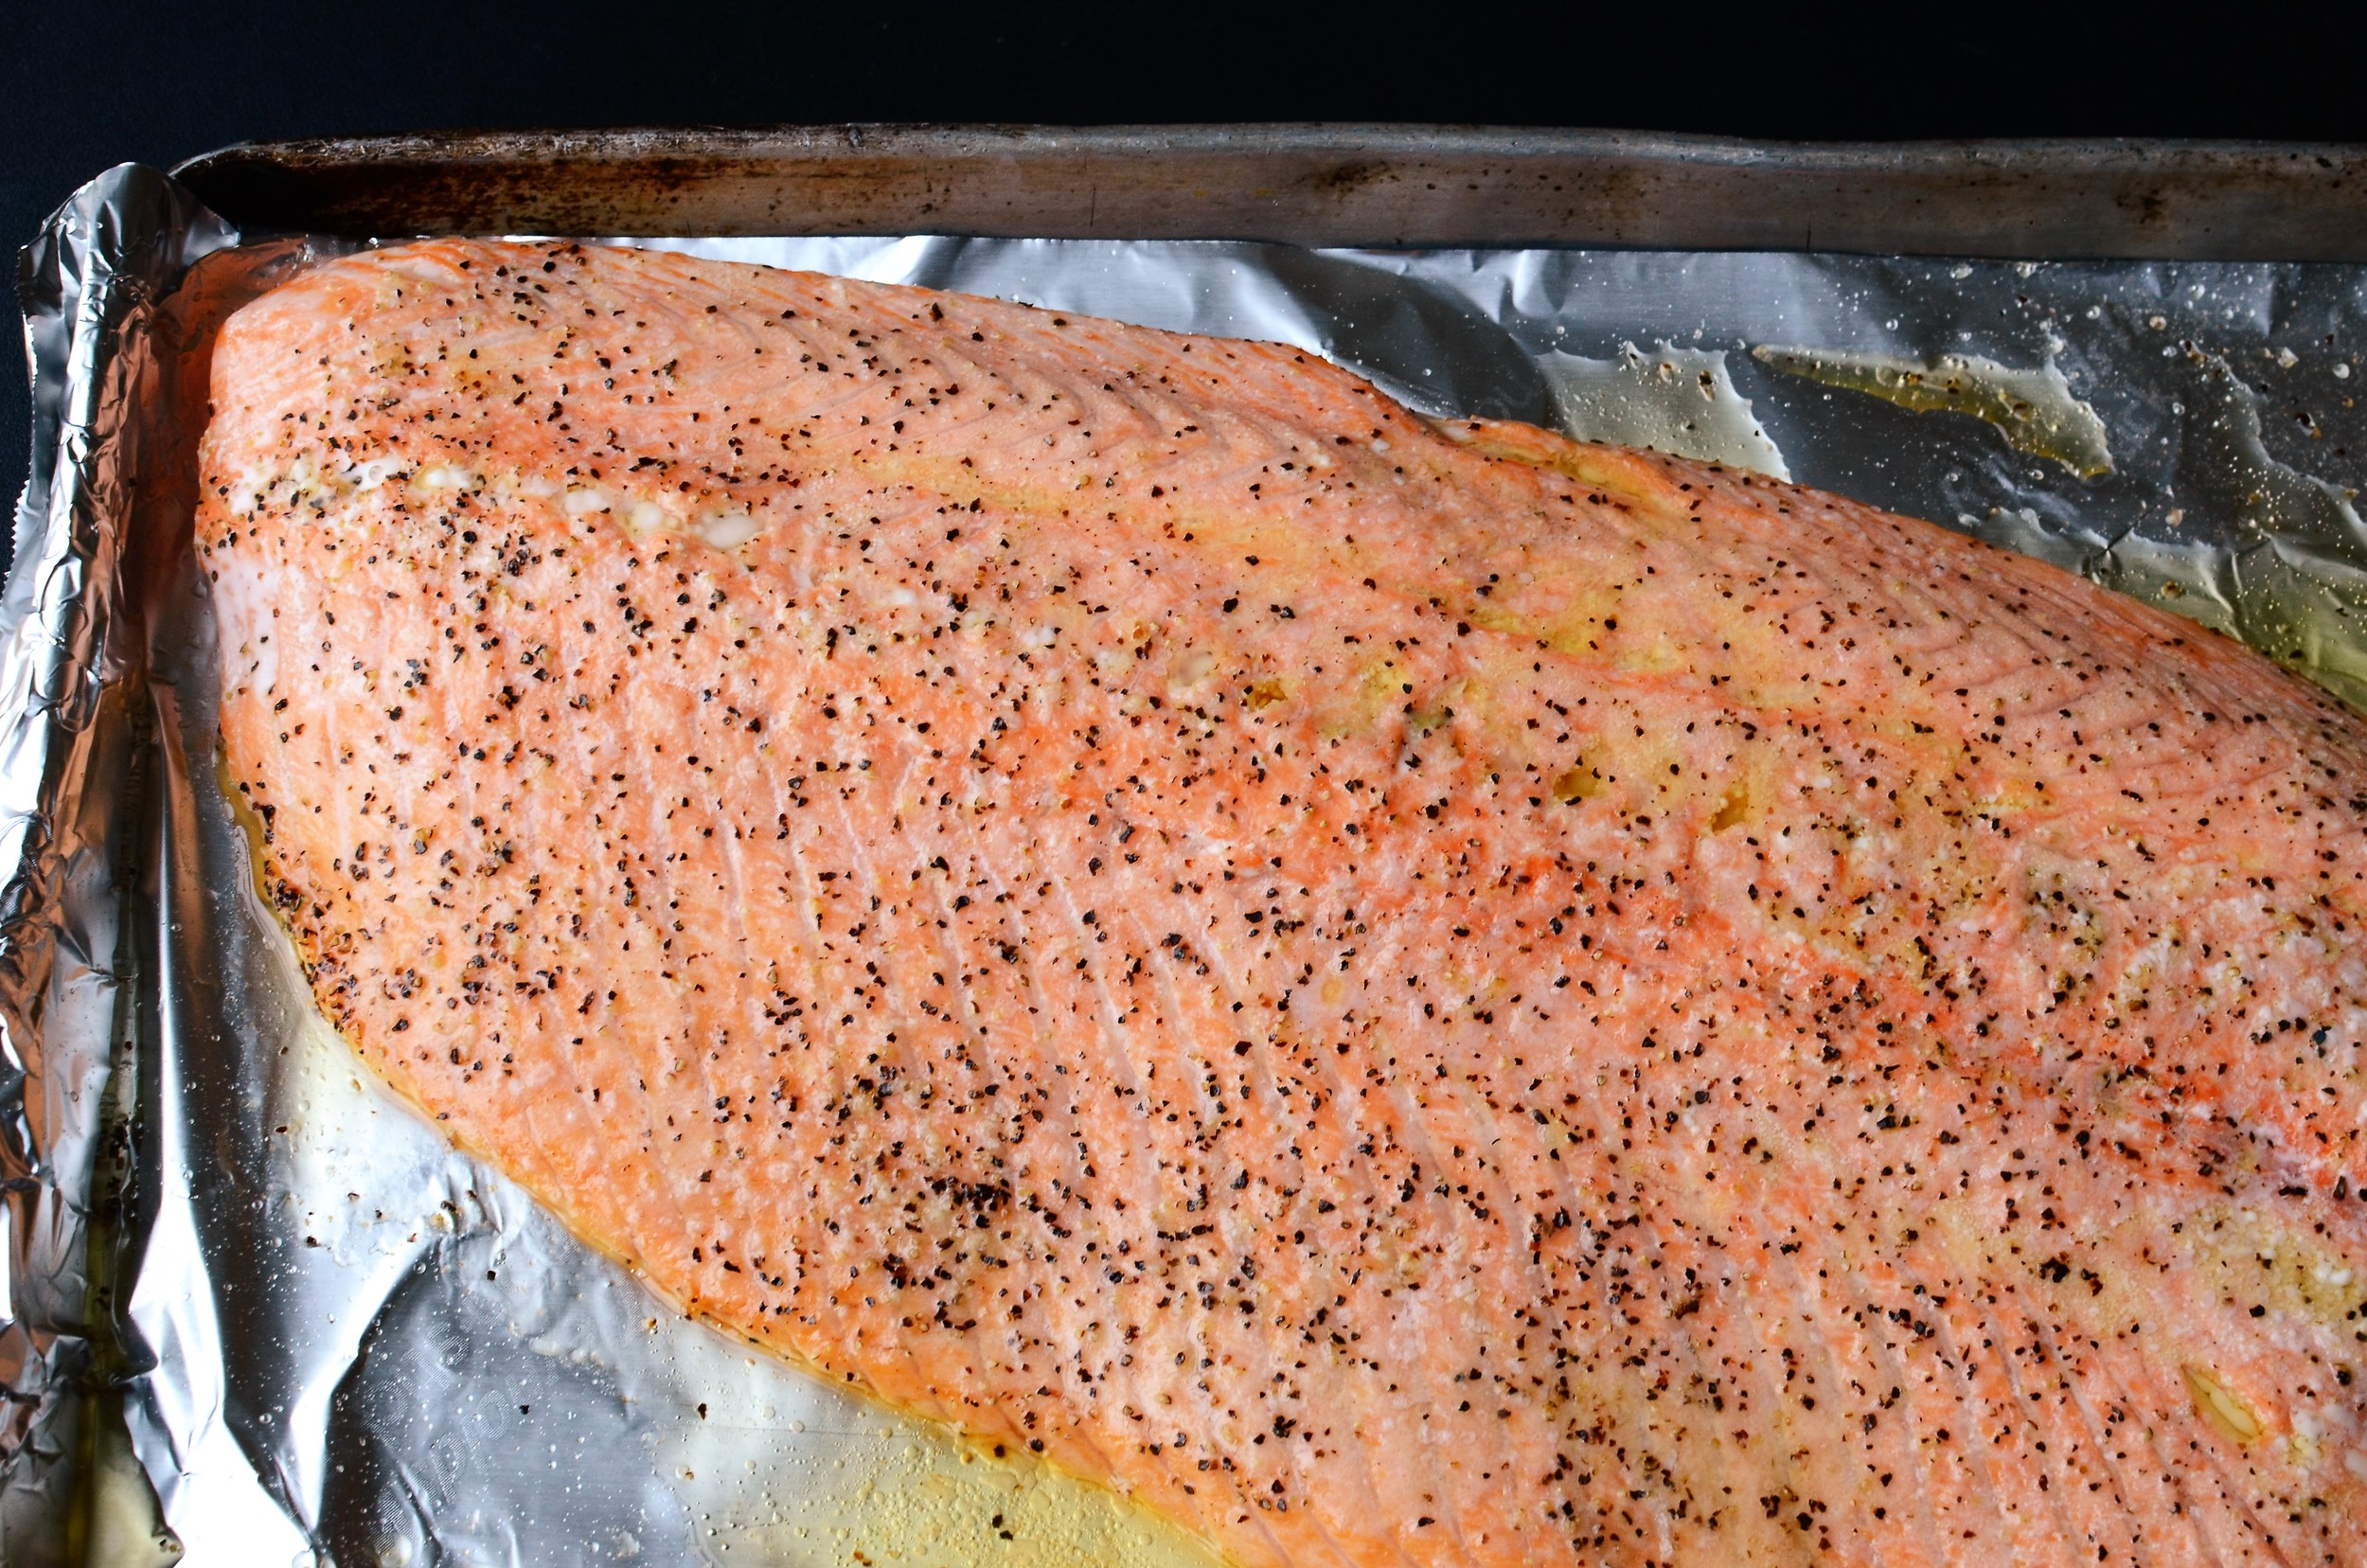 Perfect Roasted Salmon Fillet - ButterYum — how to cook salmon in the oven. how to roast salmon. how to cook a salmon filet. can I cook salmon in the oven? oven roasted salmon recipe. simple salmon in the oven. how to cook salmon perfectly.